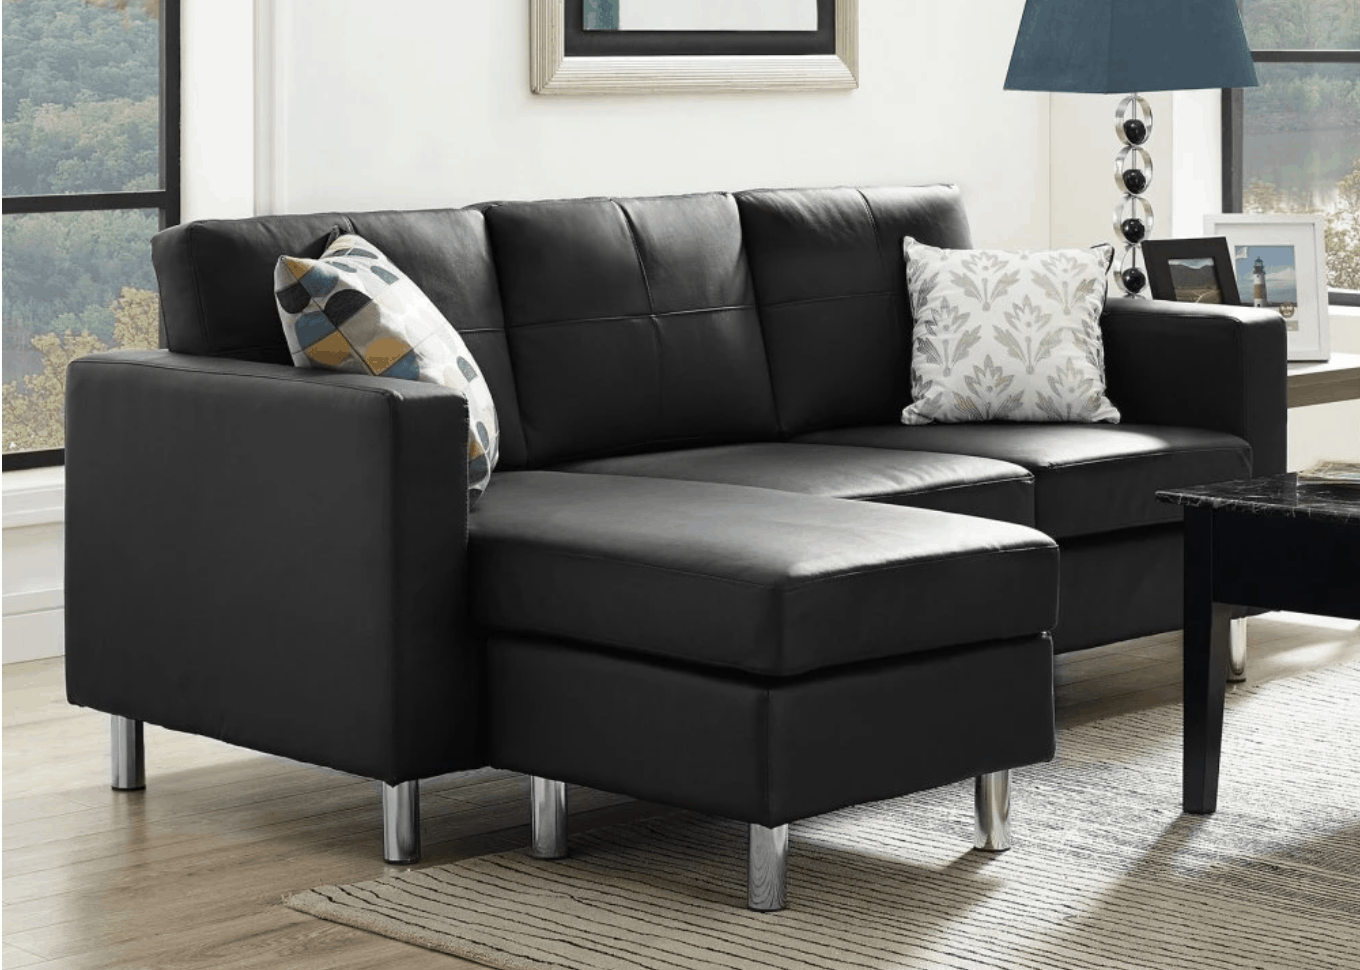 75 modern sectional sofas for small spaces 2018 Contemporary furniture for small spaces decor